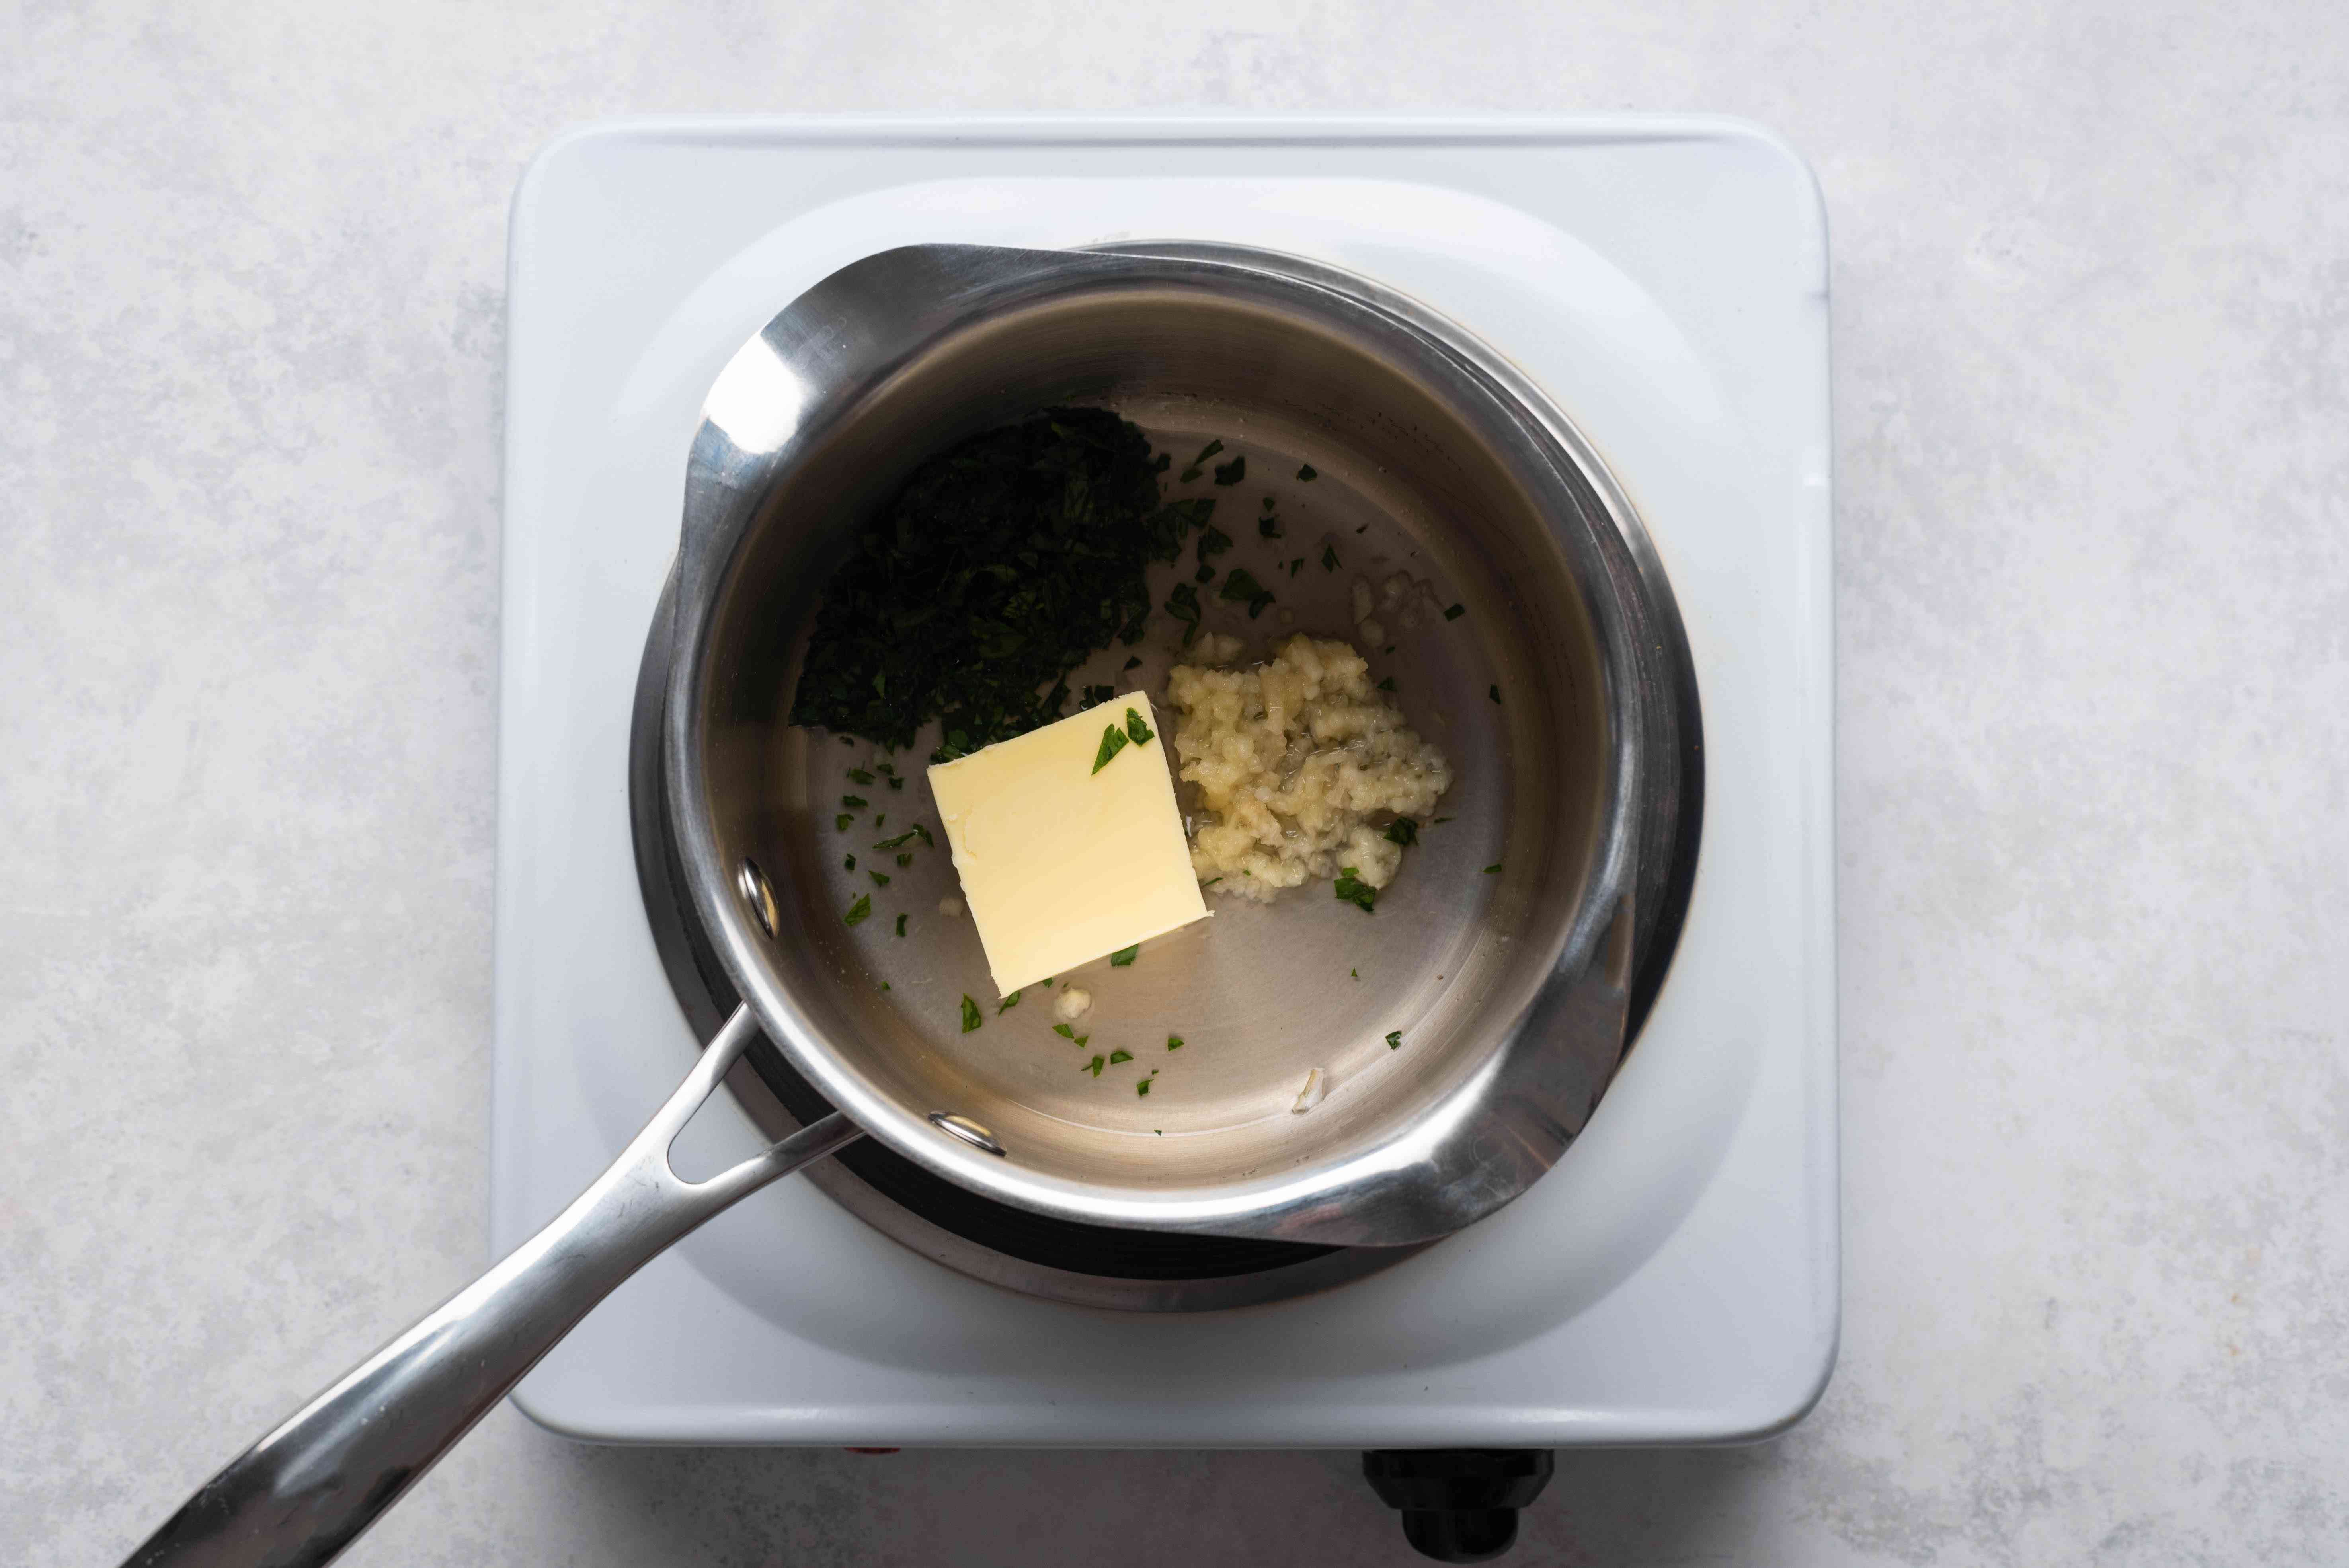 Combine the butter, lemon juice, garlic, and parsley in a small saucepan